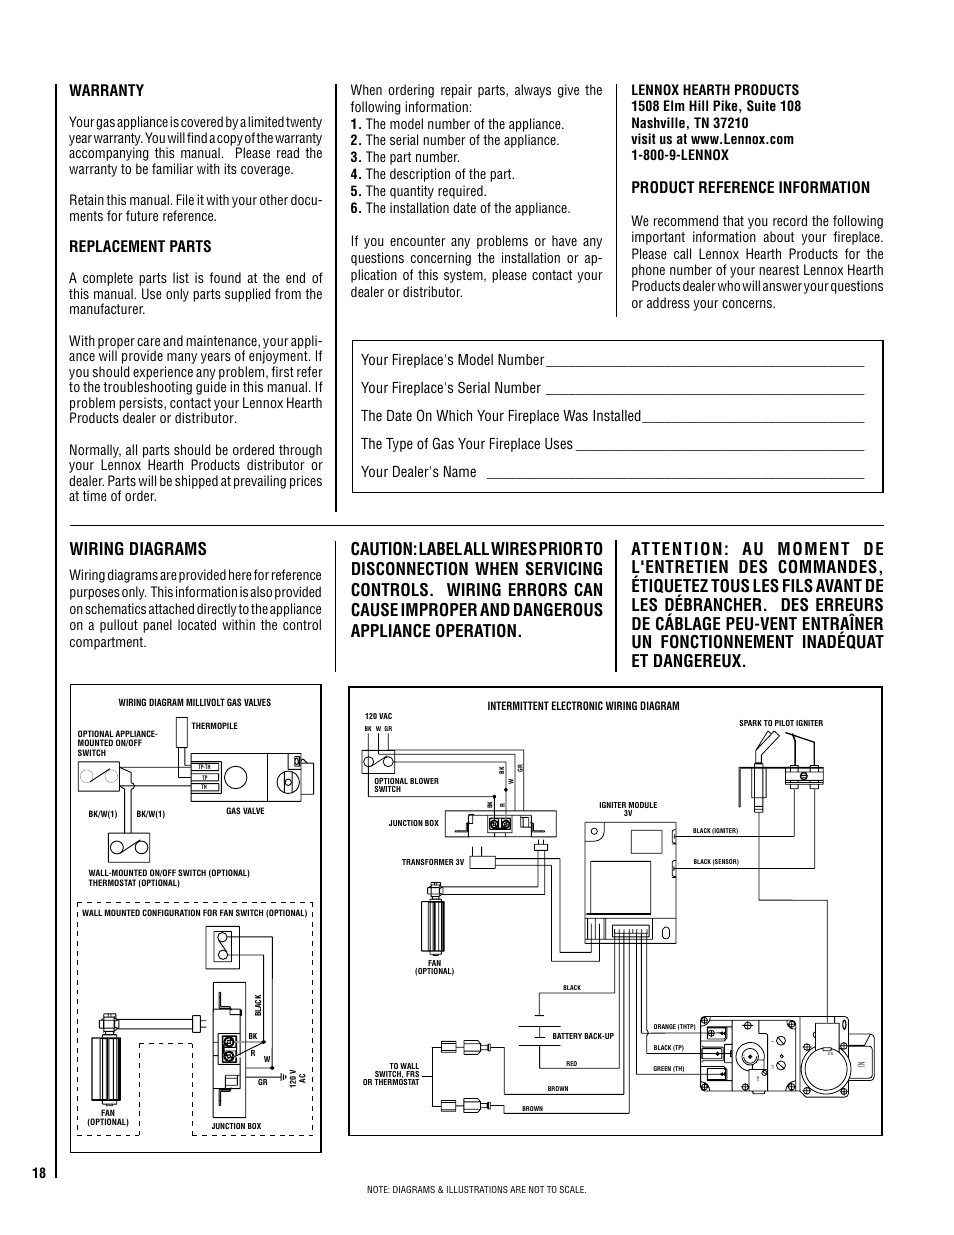 Wiring Diagrams  Warranty  Replacement Parts